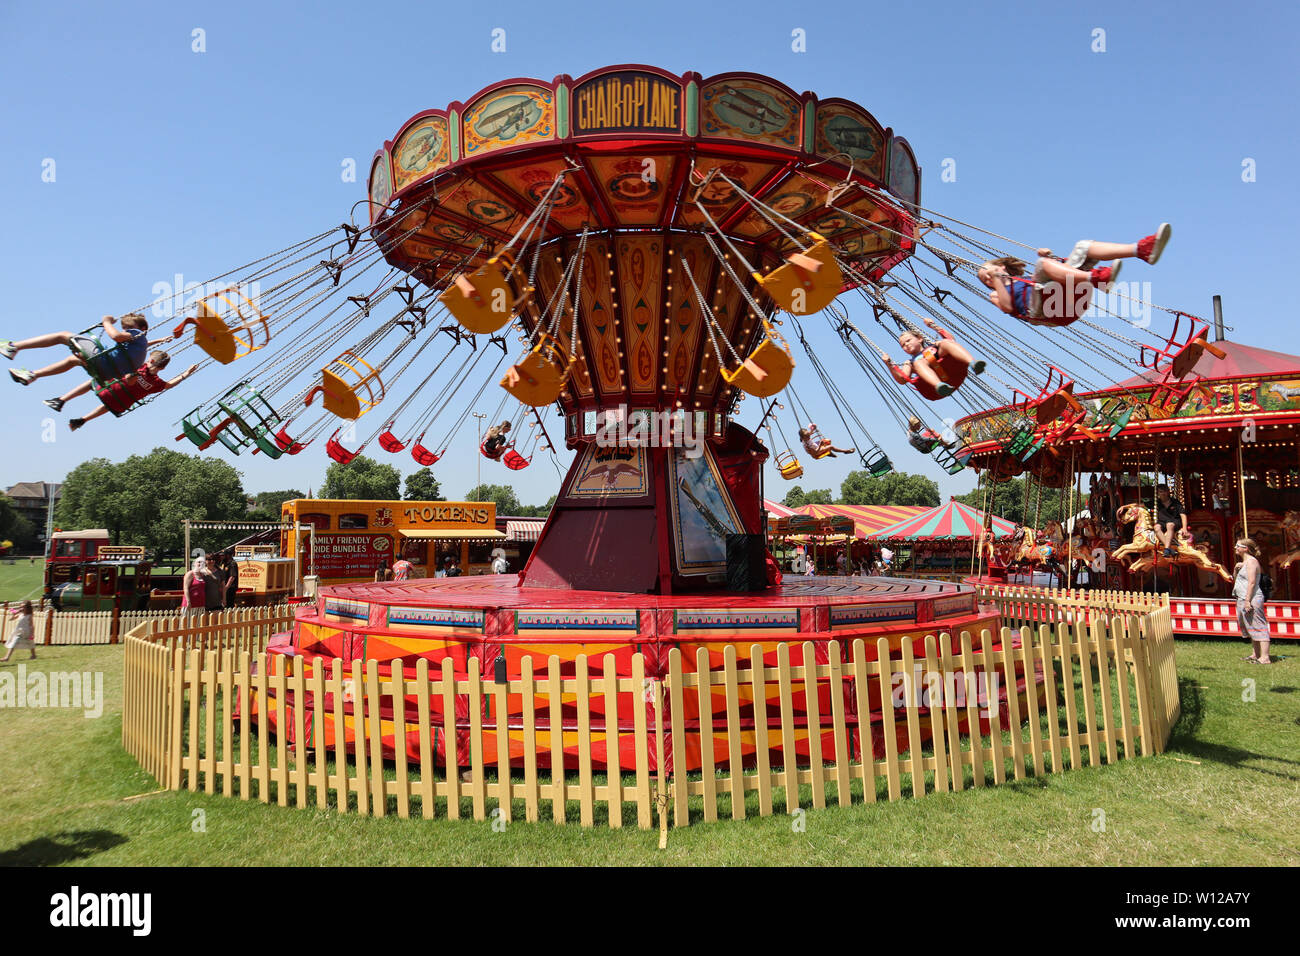 Paramount Chair O Plane Carters Steam Fair Peckham Rye Common